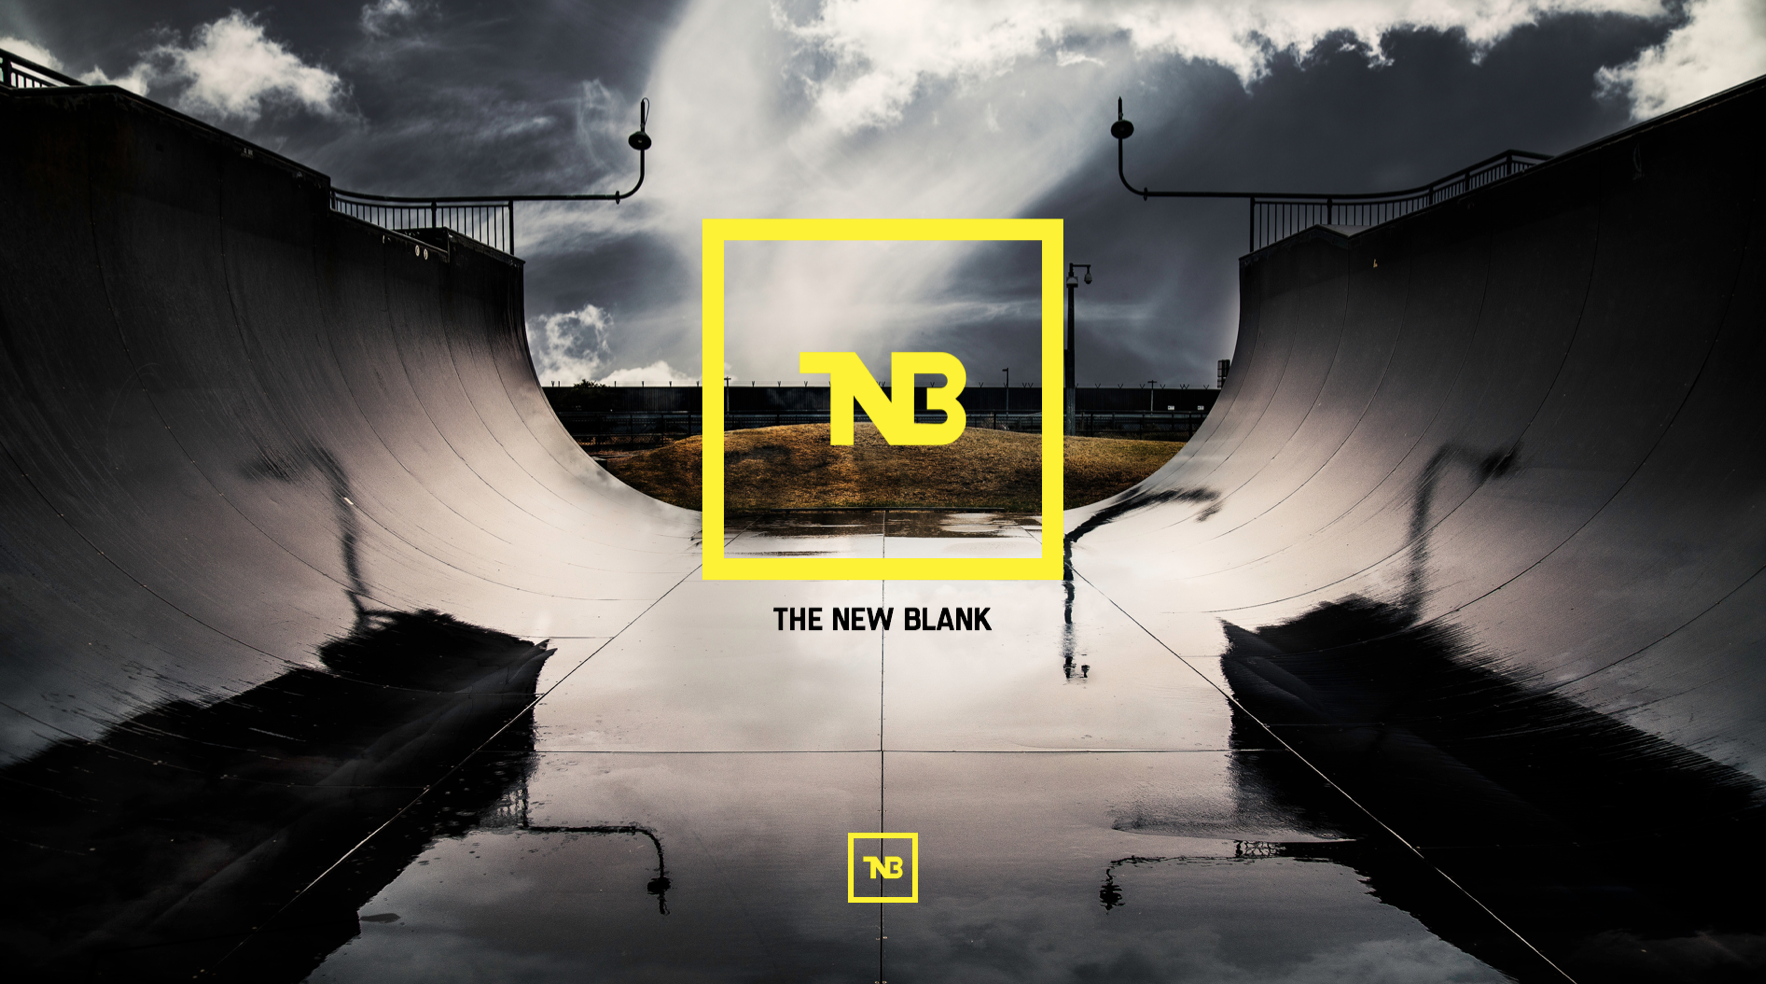 TNB_Brand_Refresh_Exploration_4